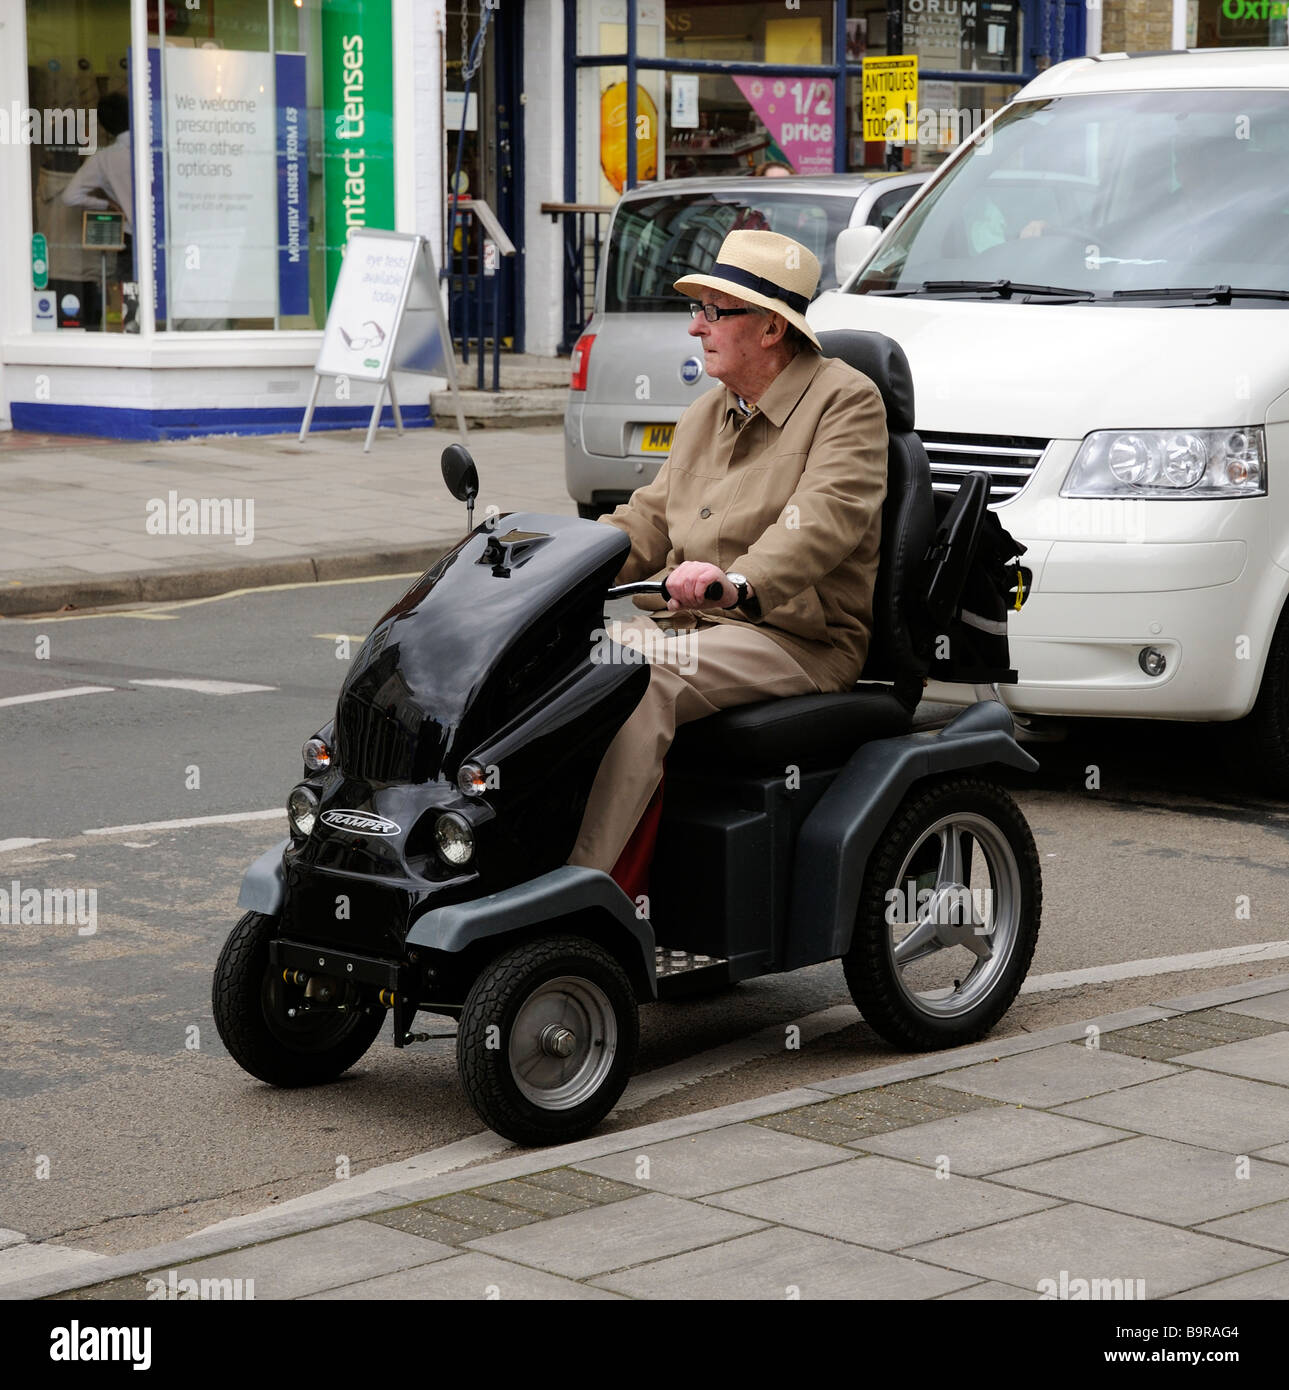 tramper a four wheeled mobility scooter manufactured by beamer